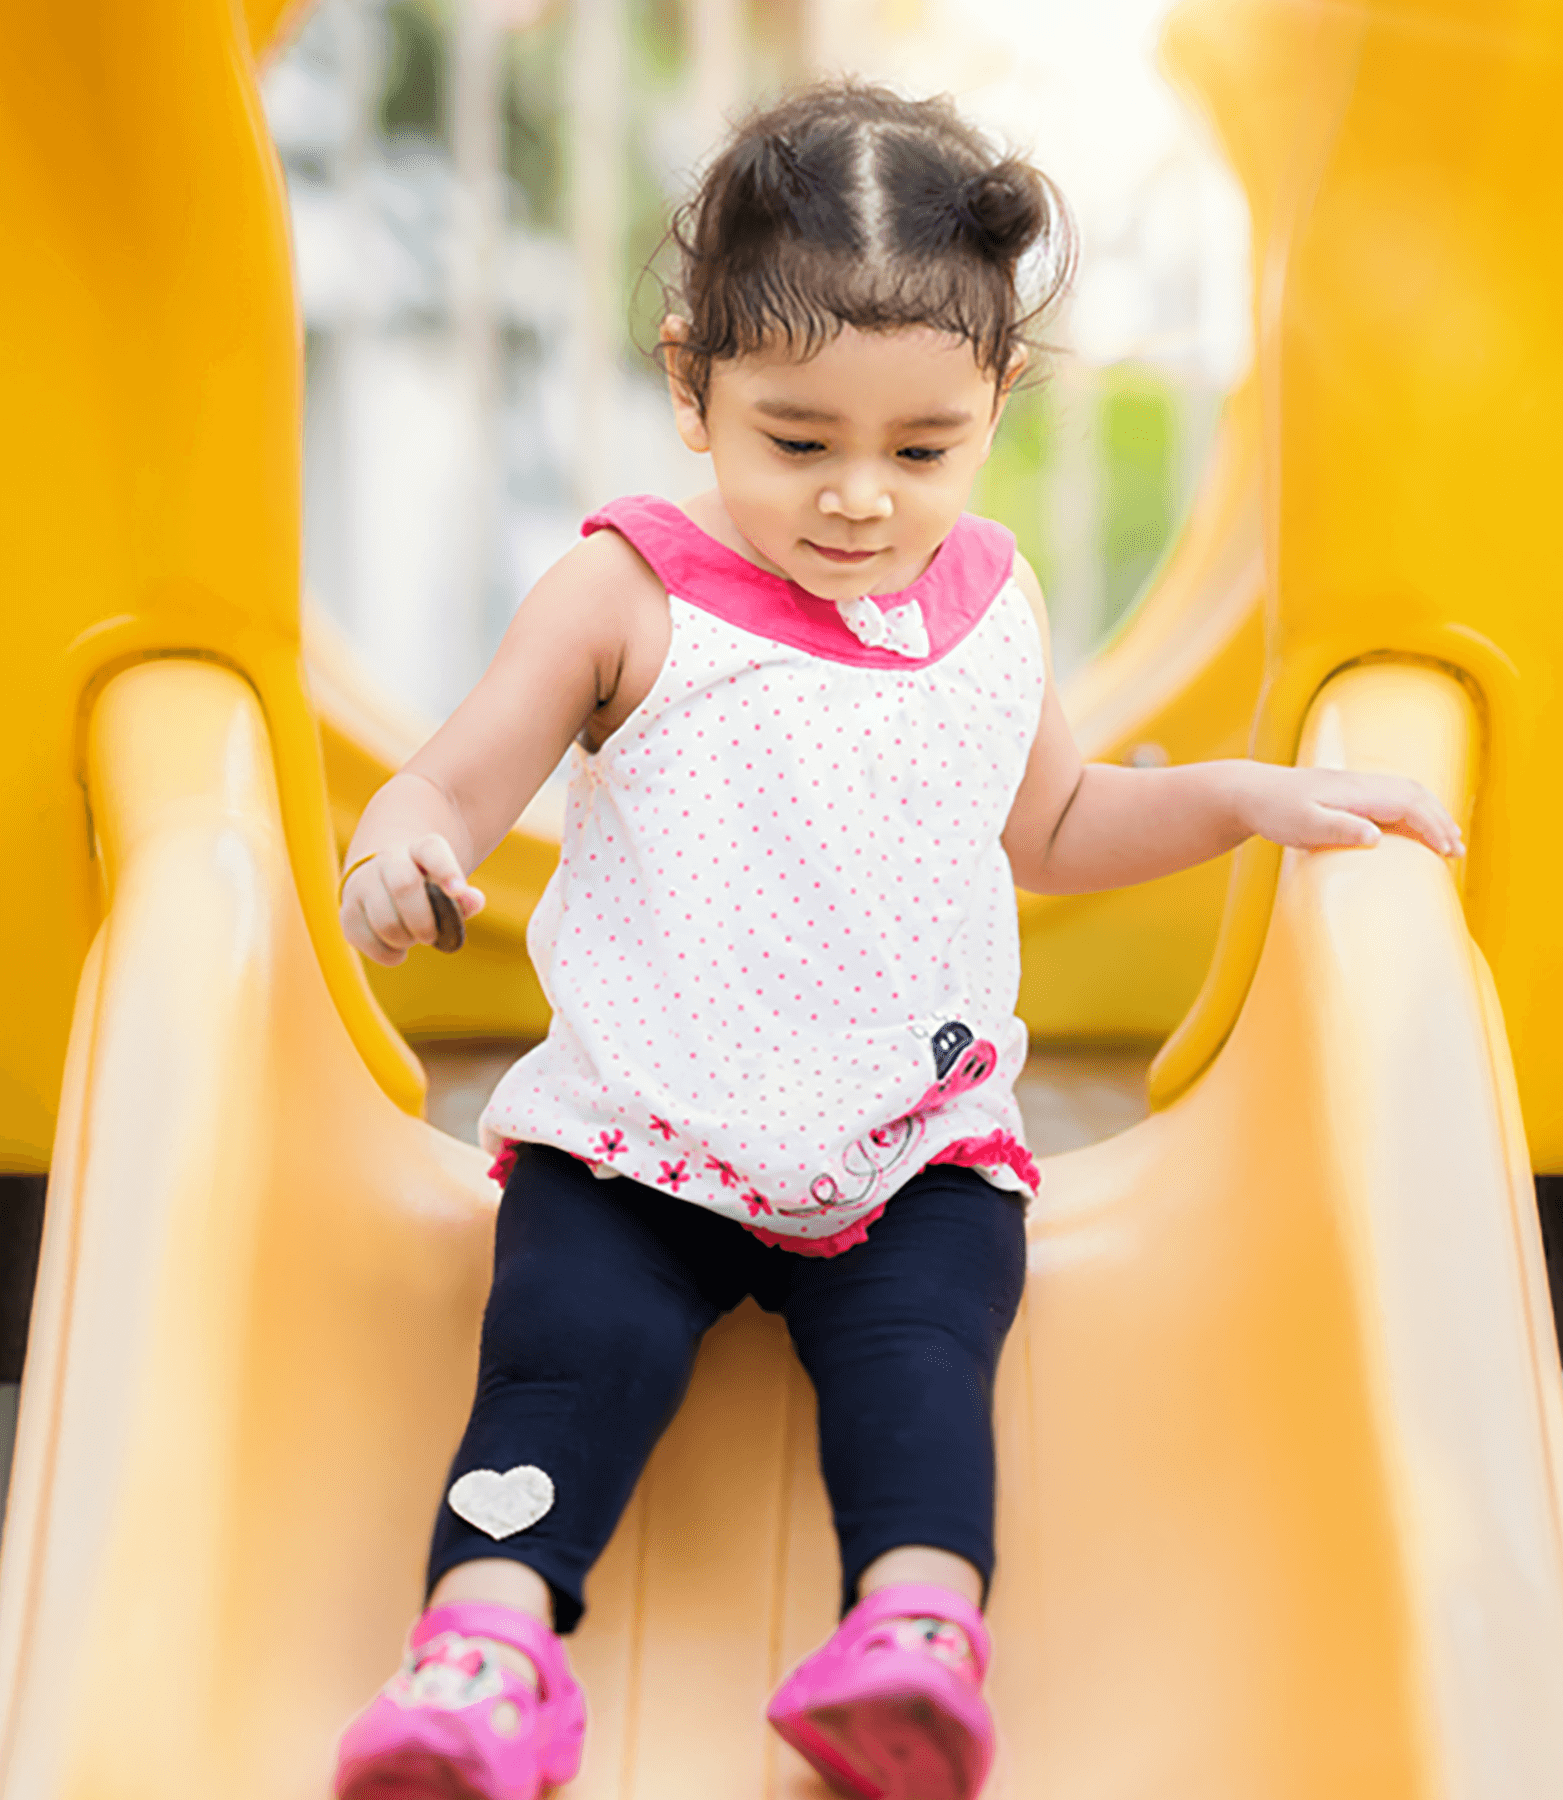 A young girl on a slide